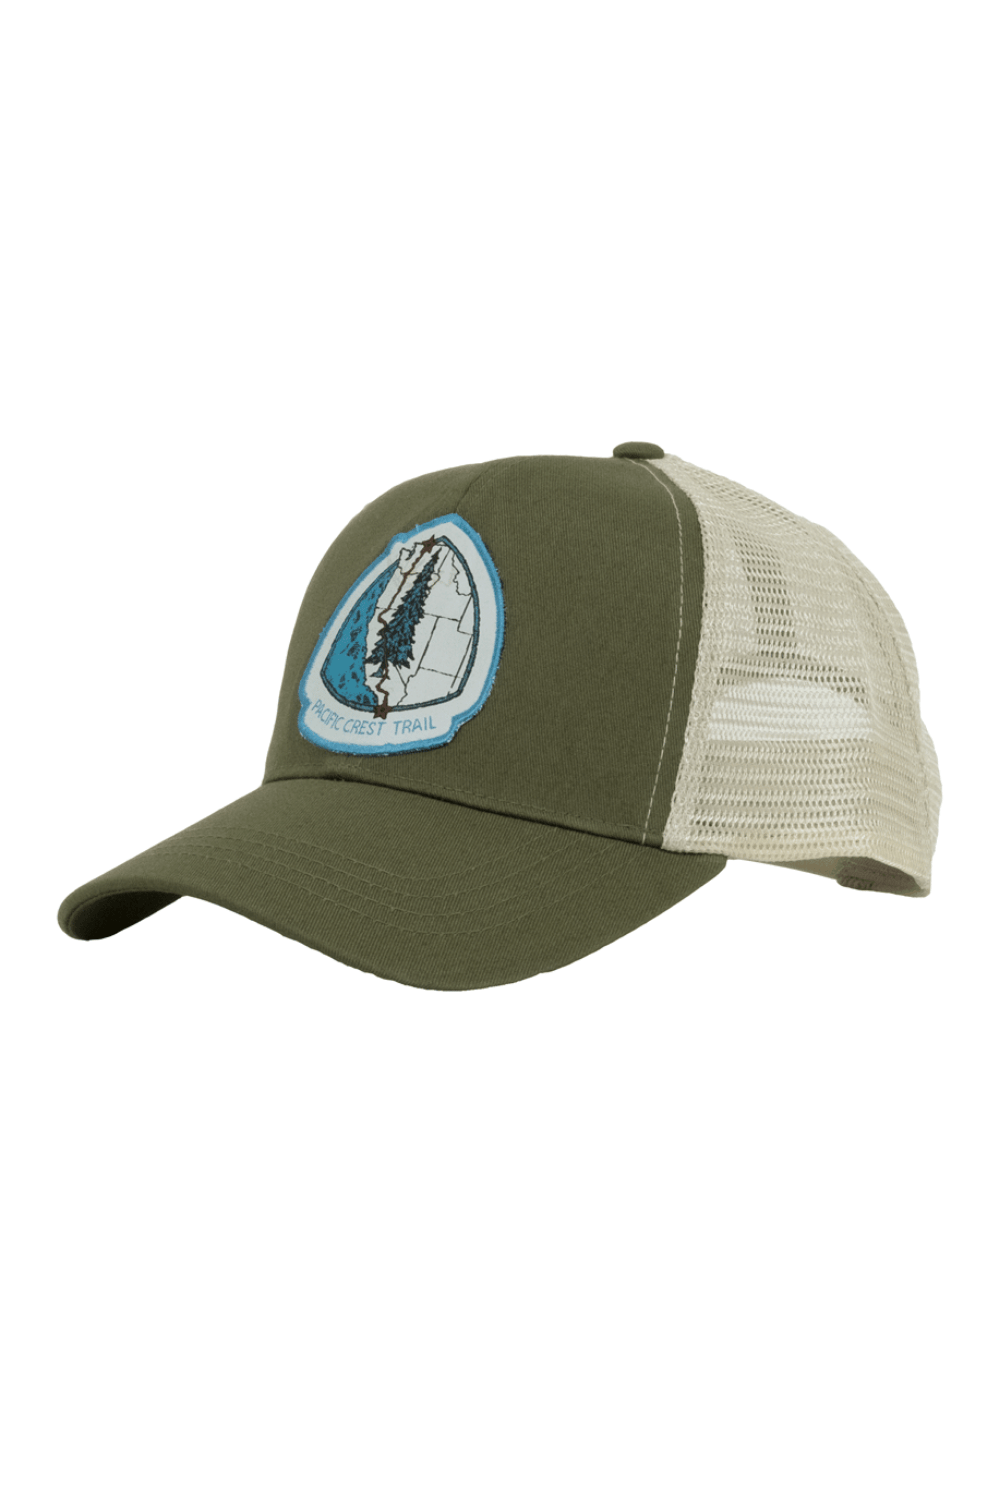 Seek Dry Goods Men's Hats Pacific Crest Trail Hiker Cap • Jungle